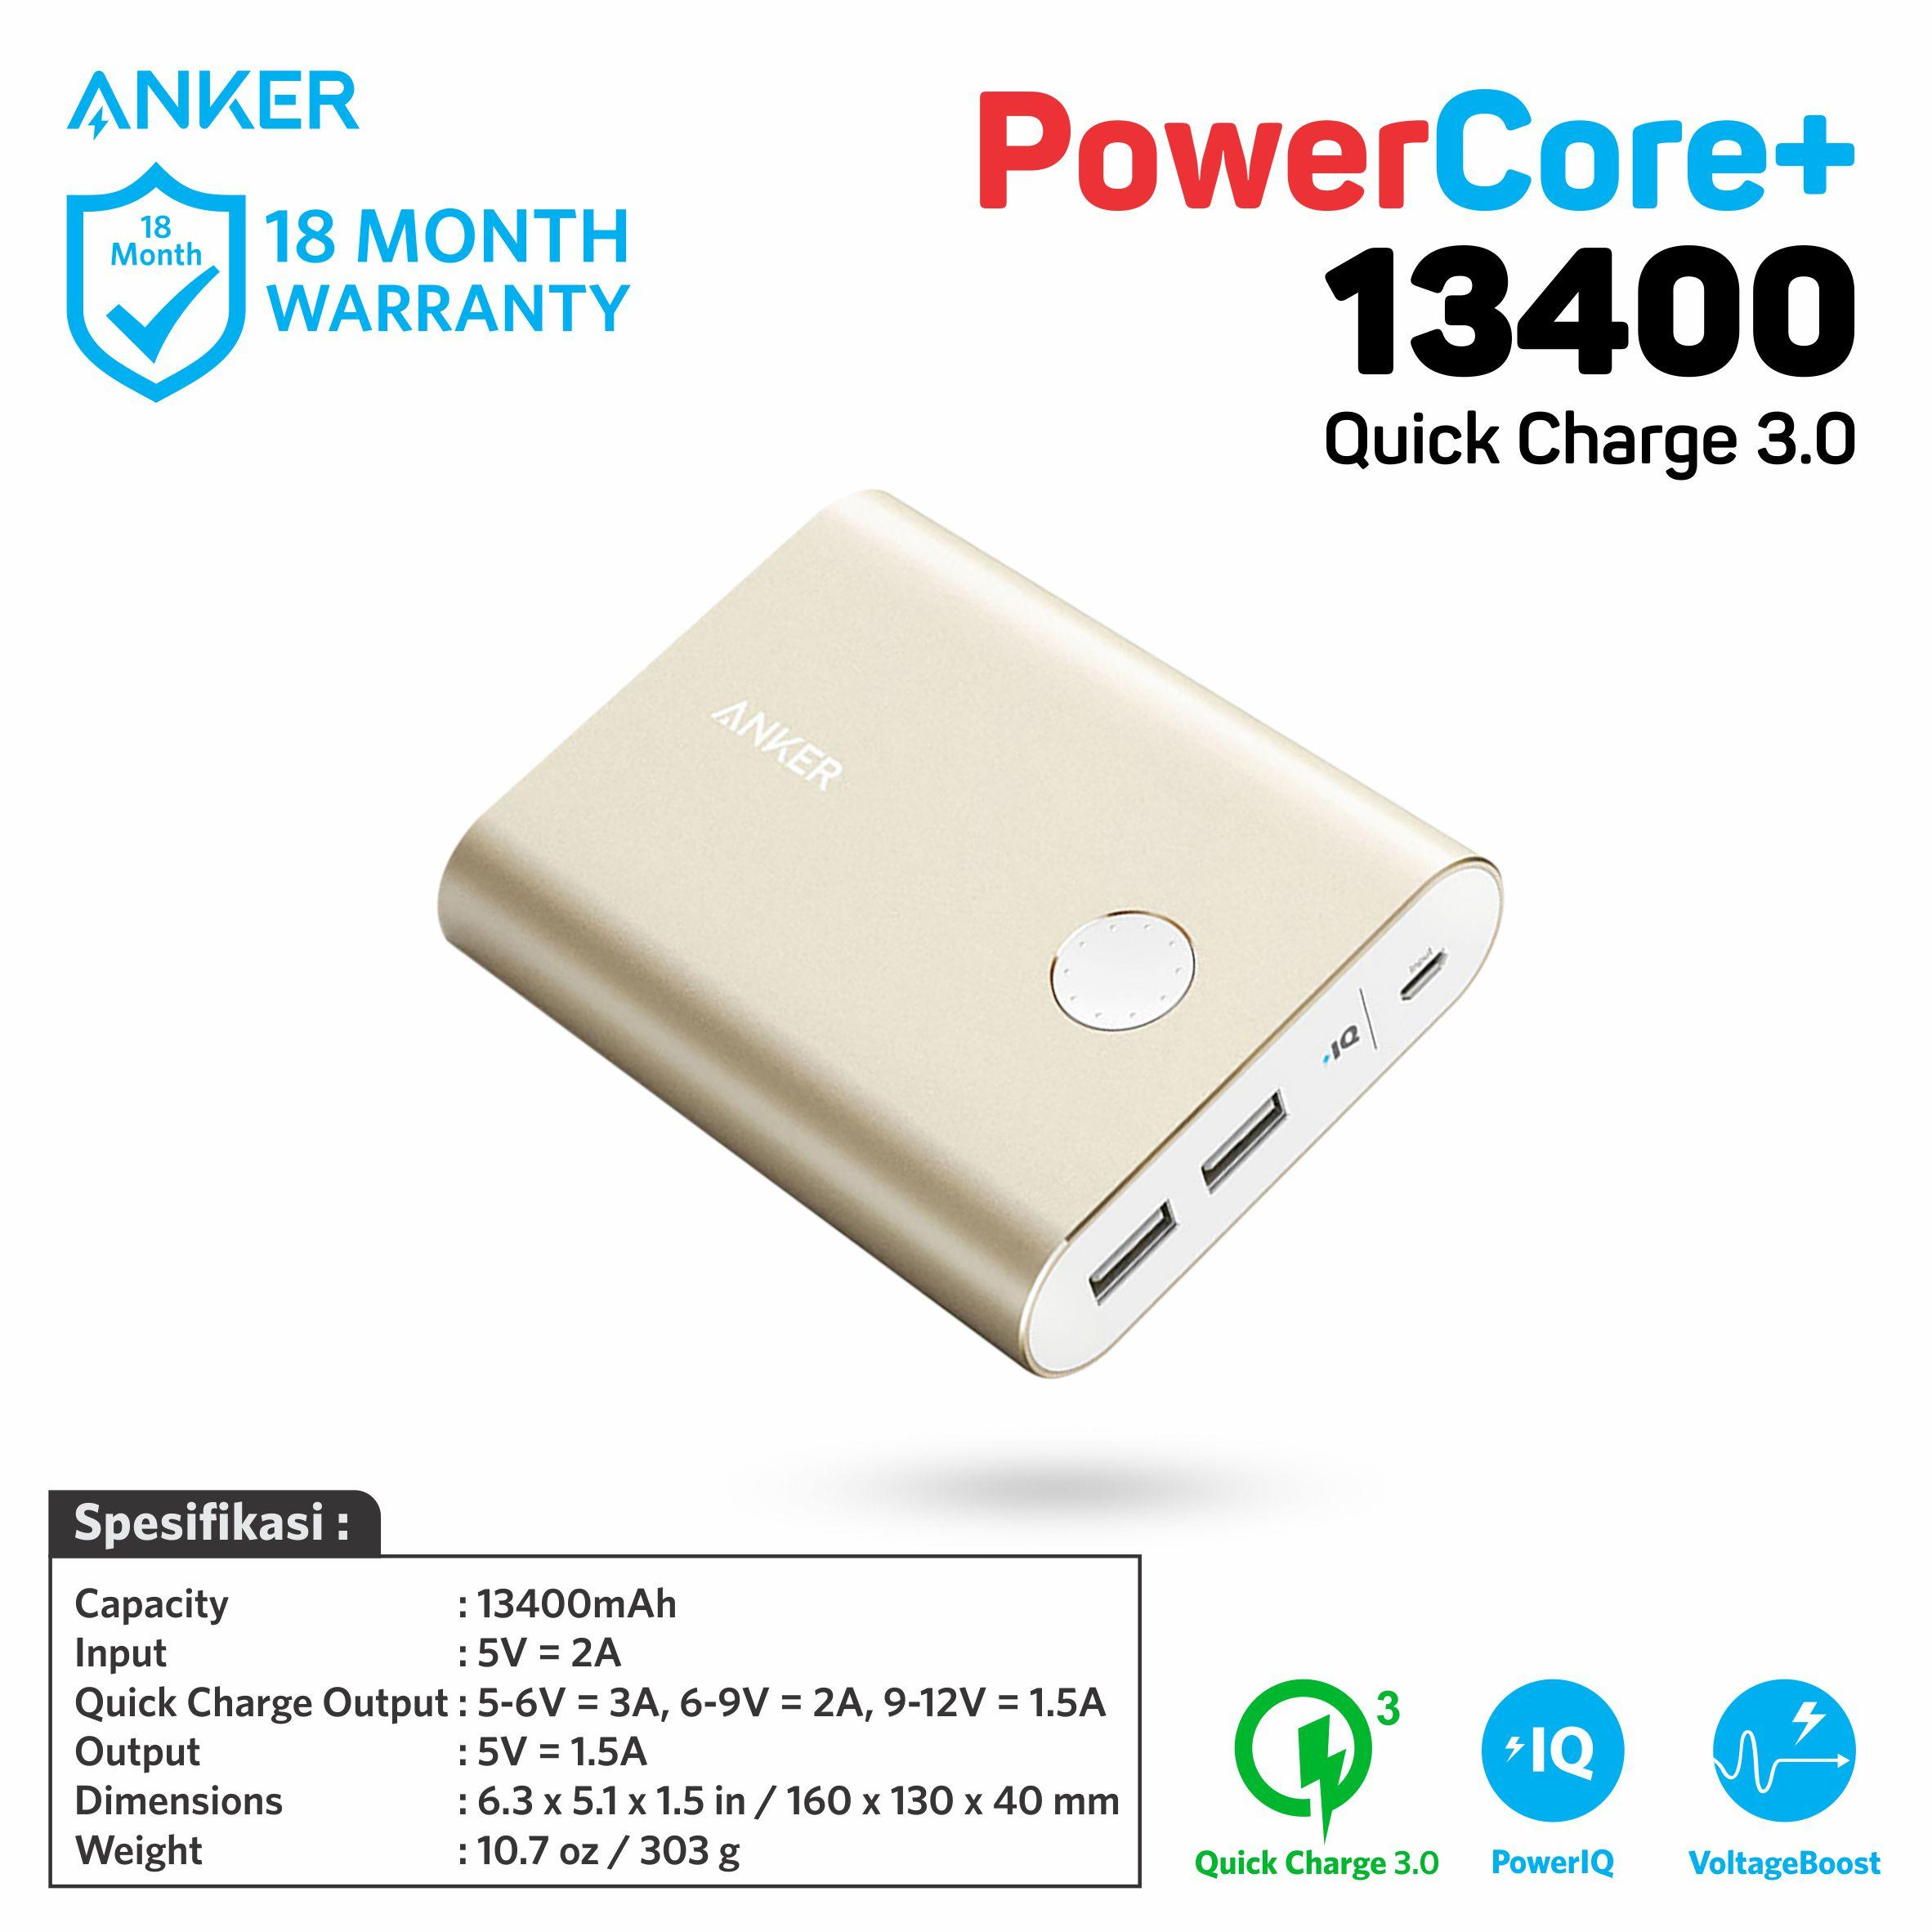 PowerBank Anker PowerCore+ 13400 Quick Charge 3.0 - A1316 Gold